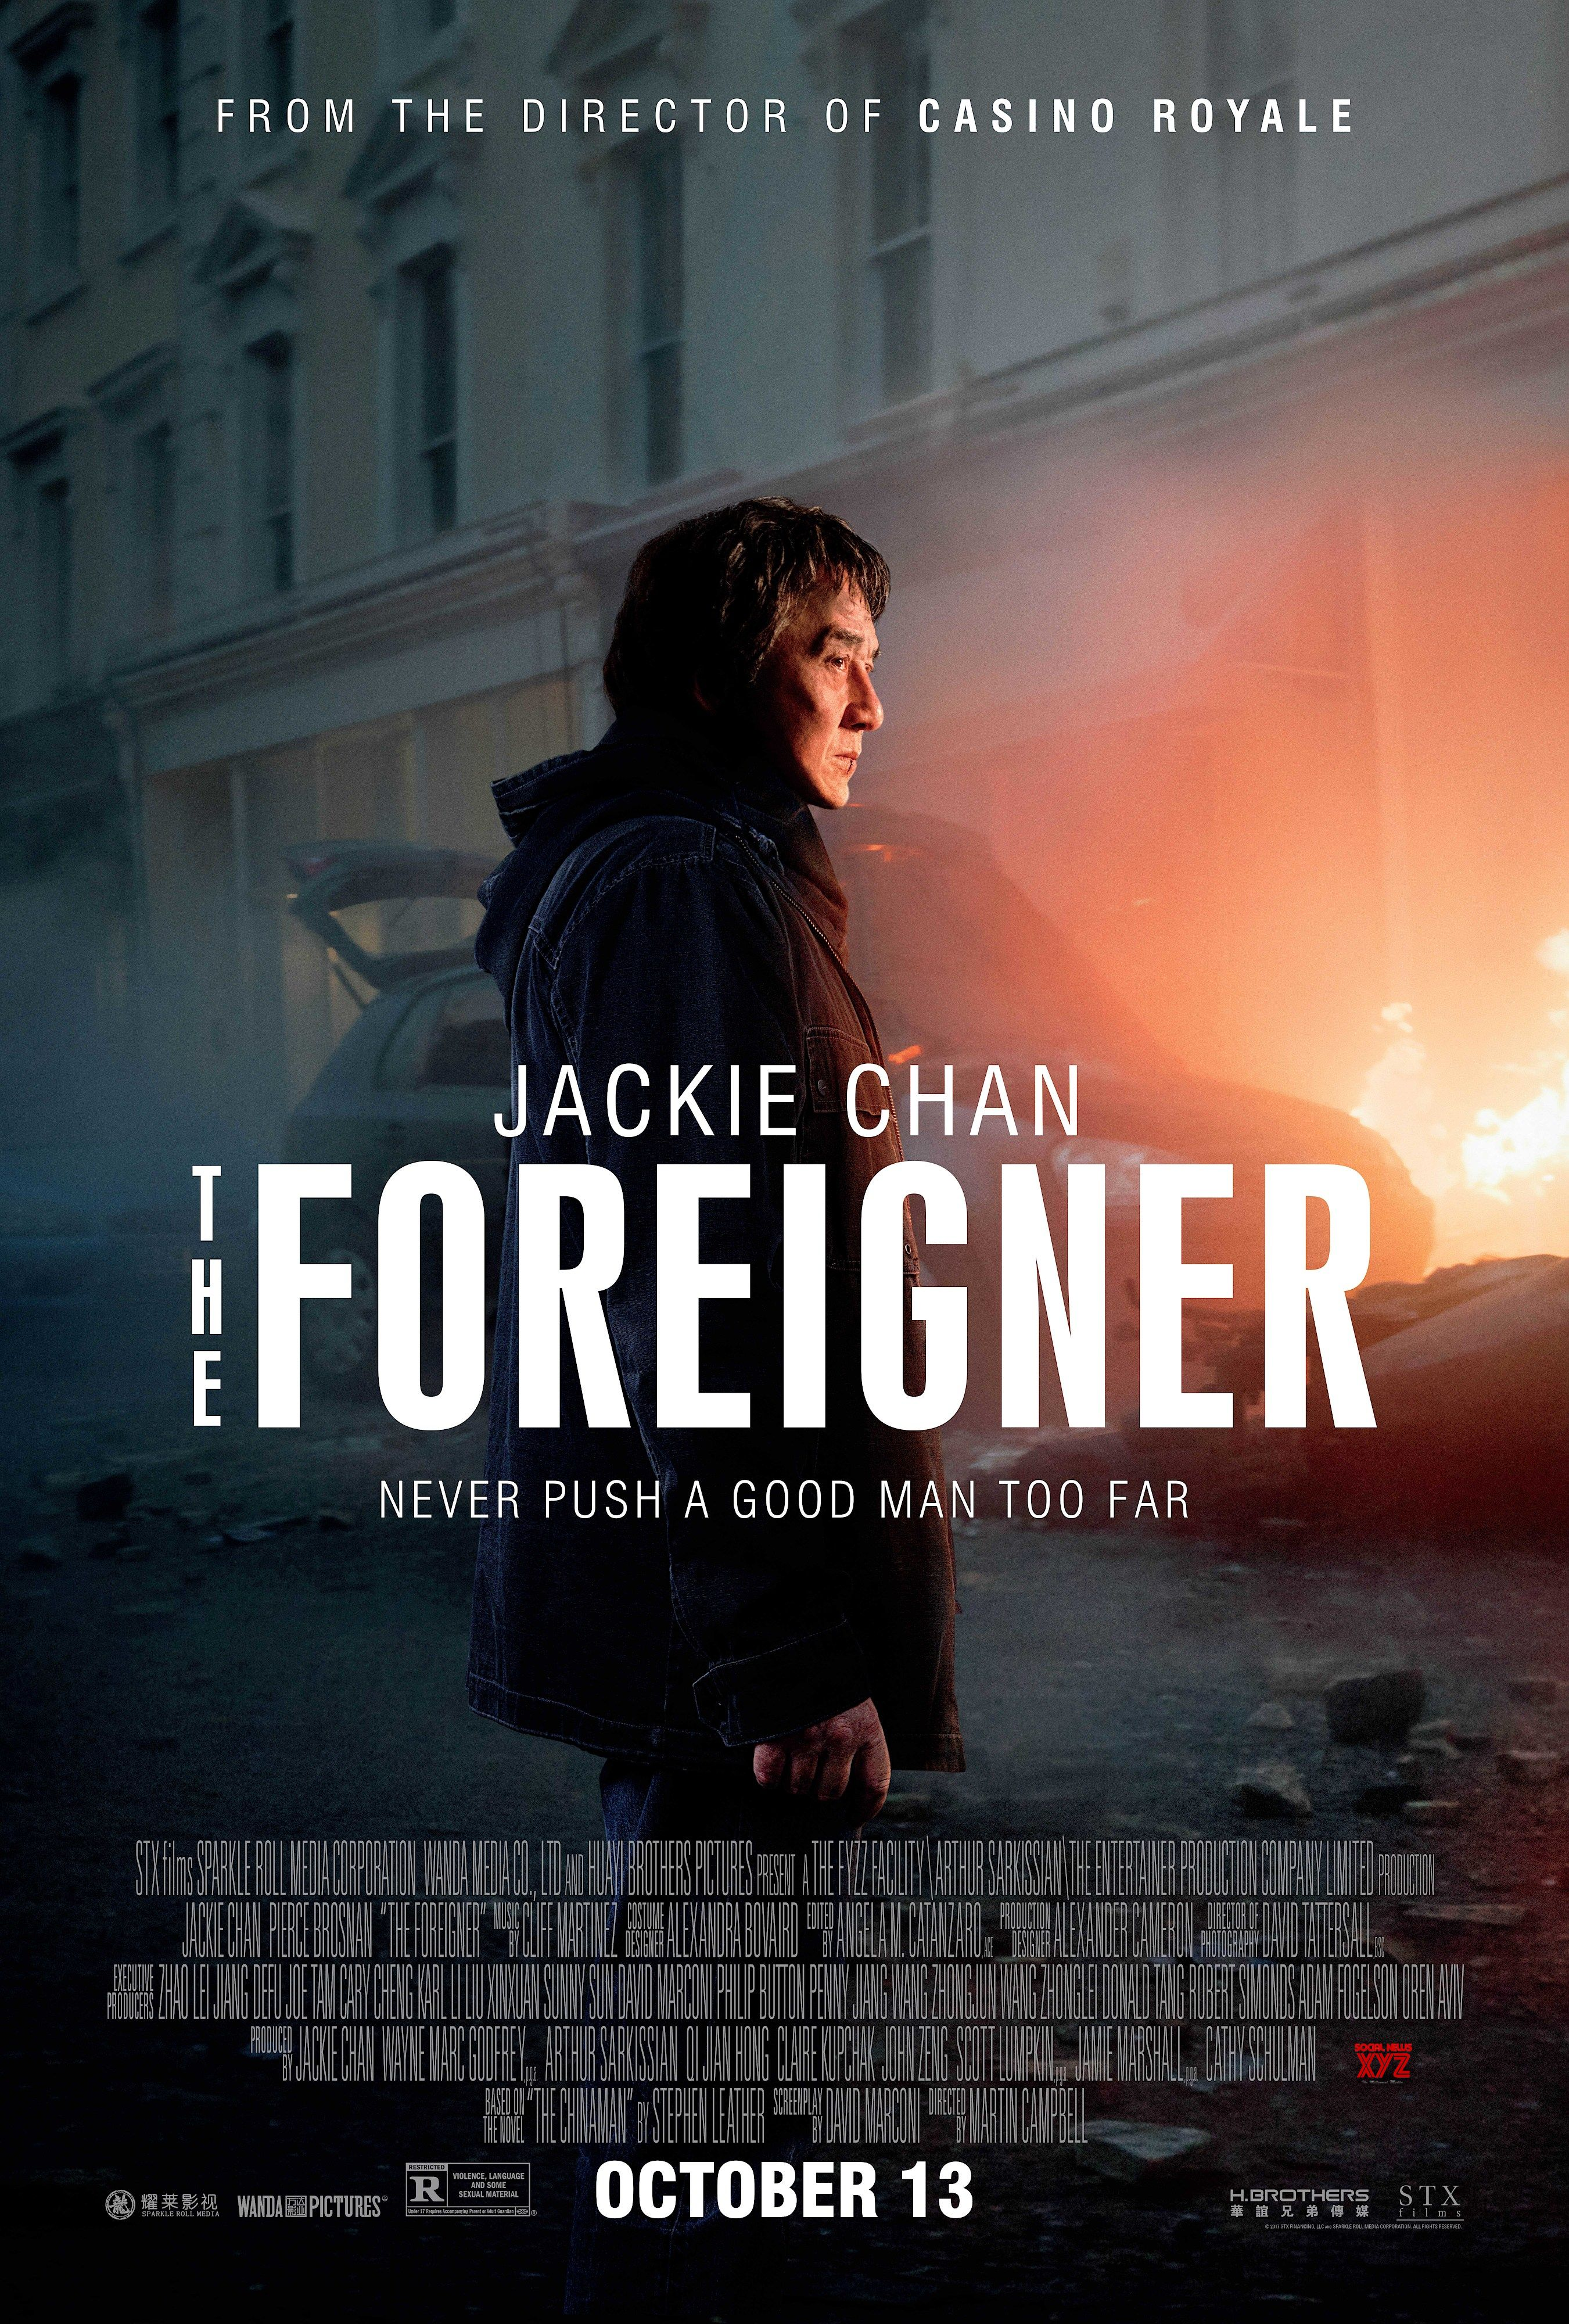 The Foreigner Movie Poster - Social News XYZ